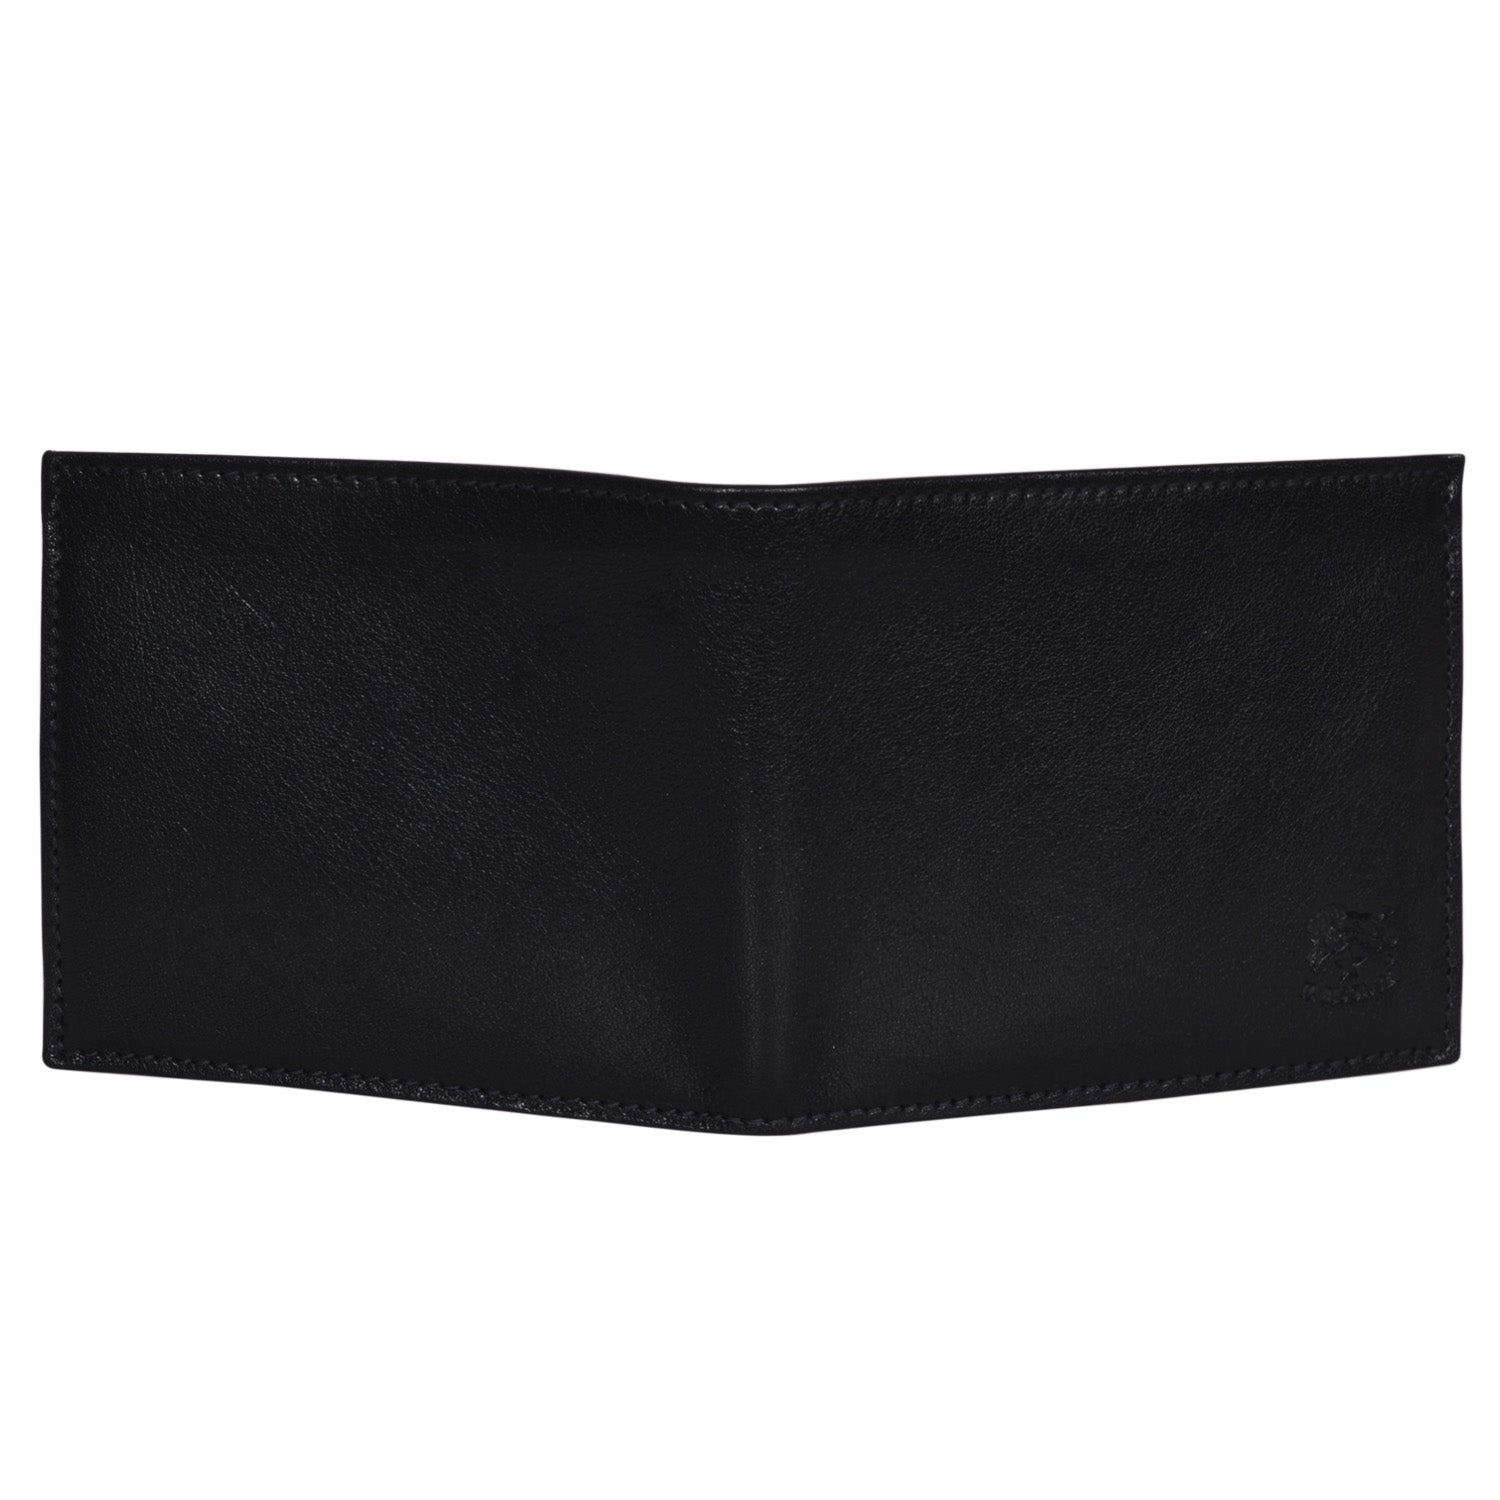 IL BISONTE MEN'S BI-FOLD WALLET IN BLACK COWHIDE LEATHER